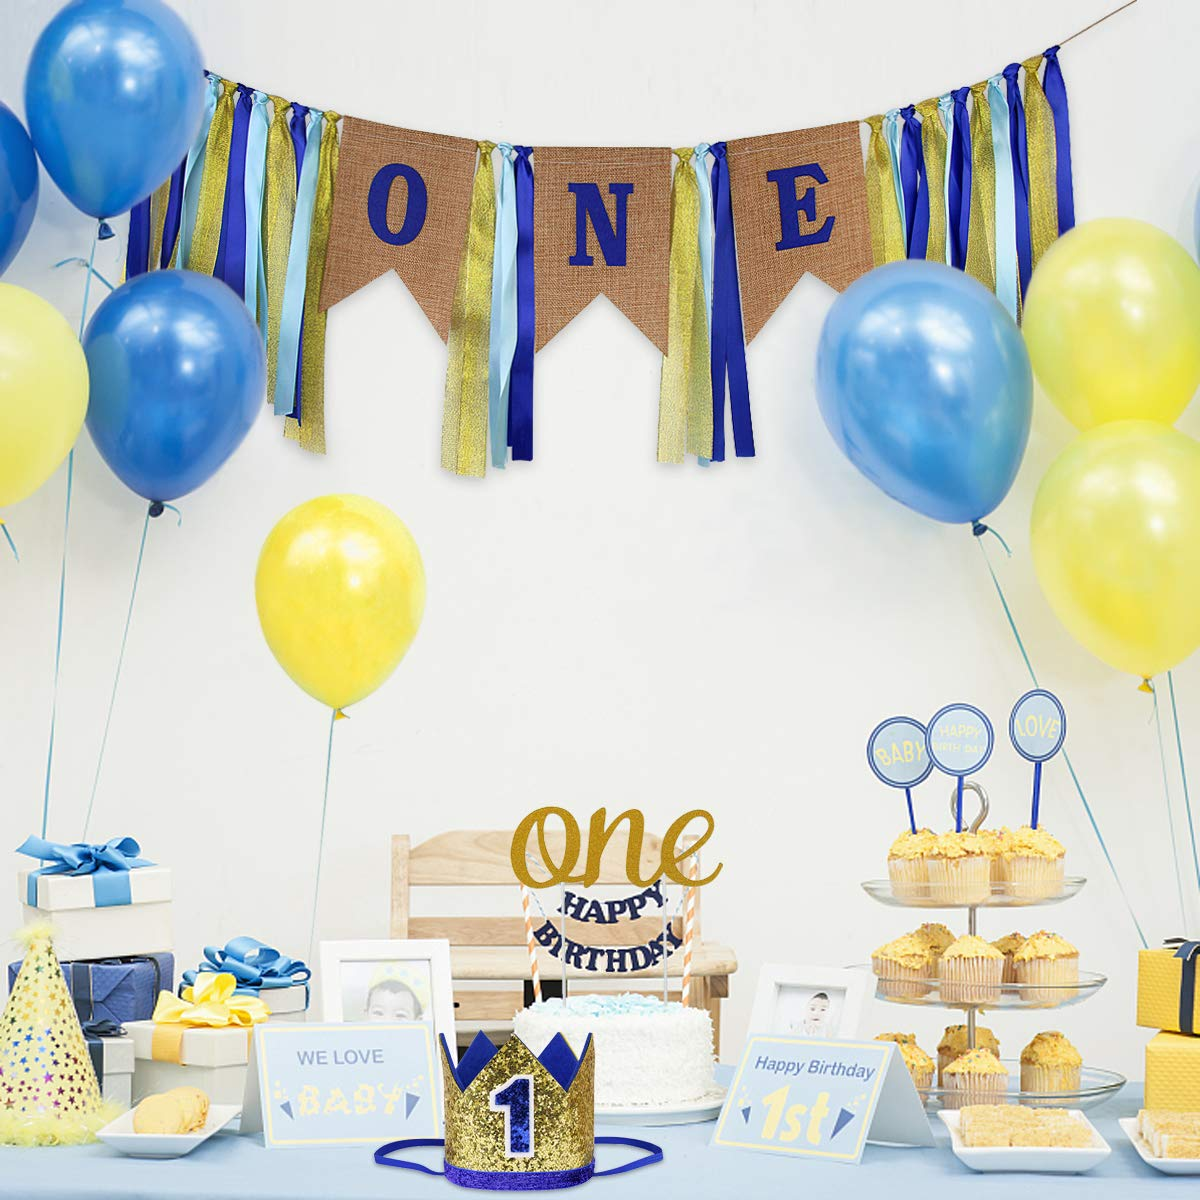 1st Birthday Themes Boy.Details About First Birthday Decorations Party Supplies For Boy One Burlap Banner Crown Topper